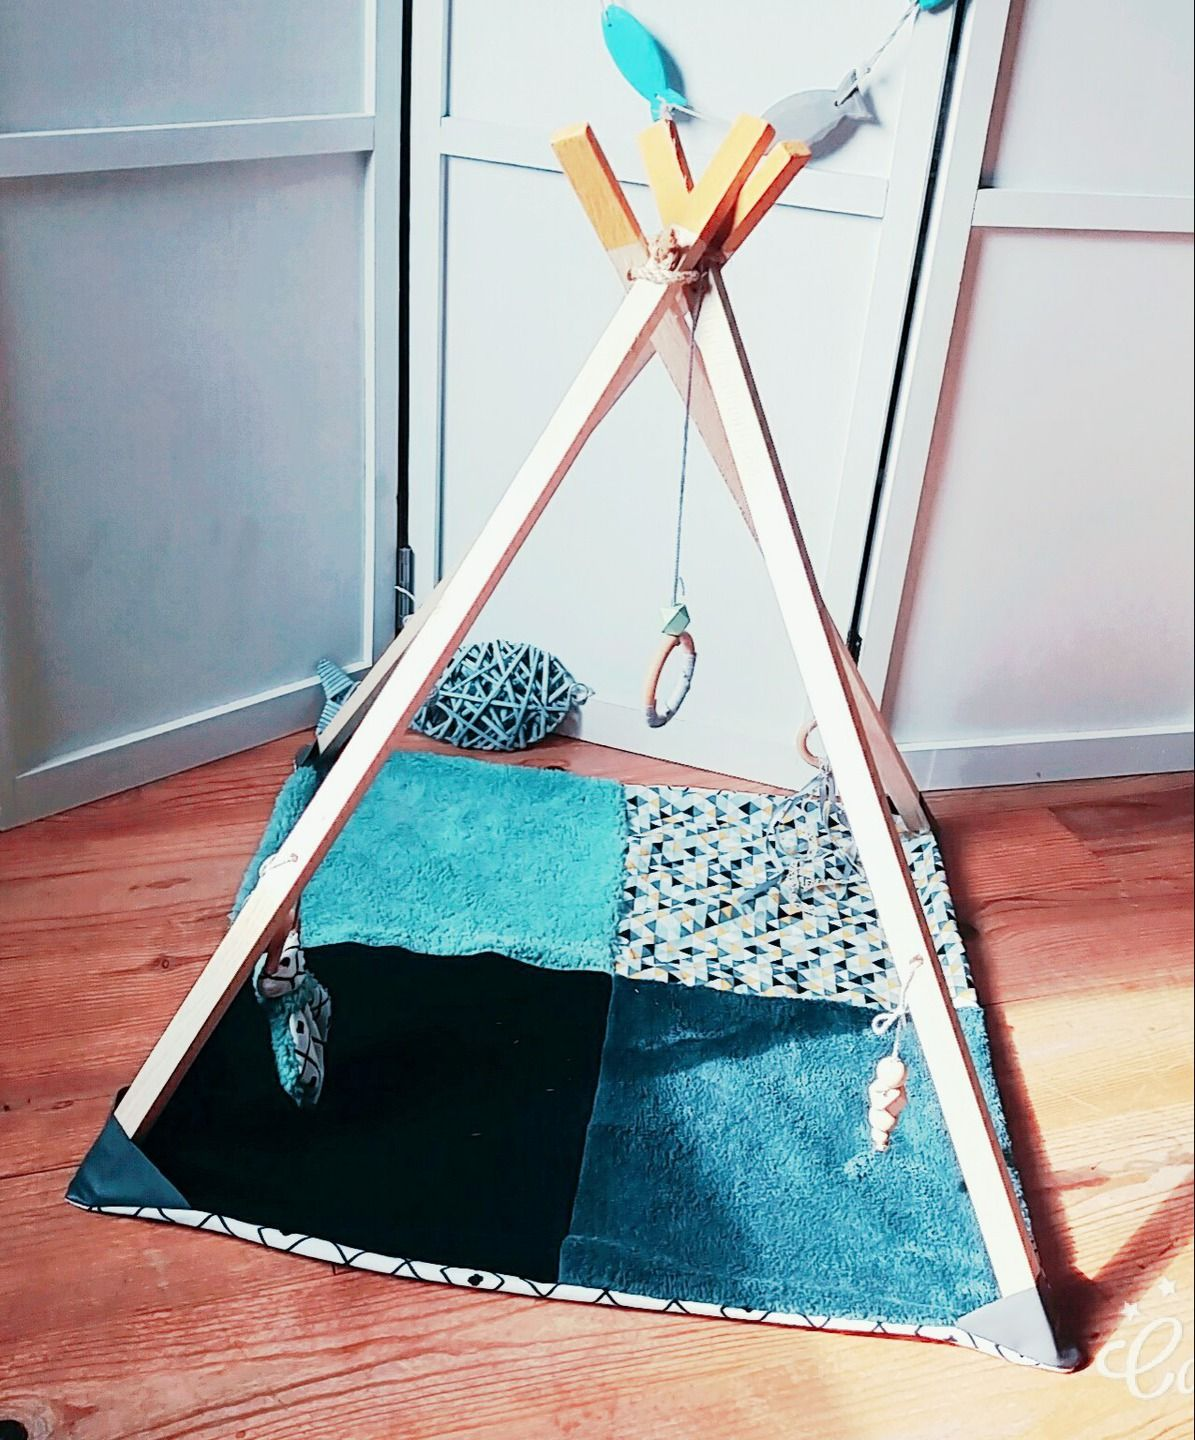 tapis d 39 veil pour b b en bois et tissu en forme de tipi. Black Bedroom Furniture Sets. Home Design Ideas